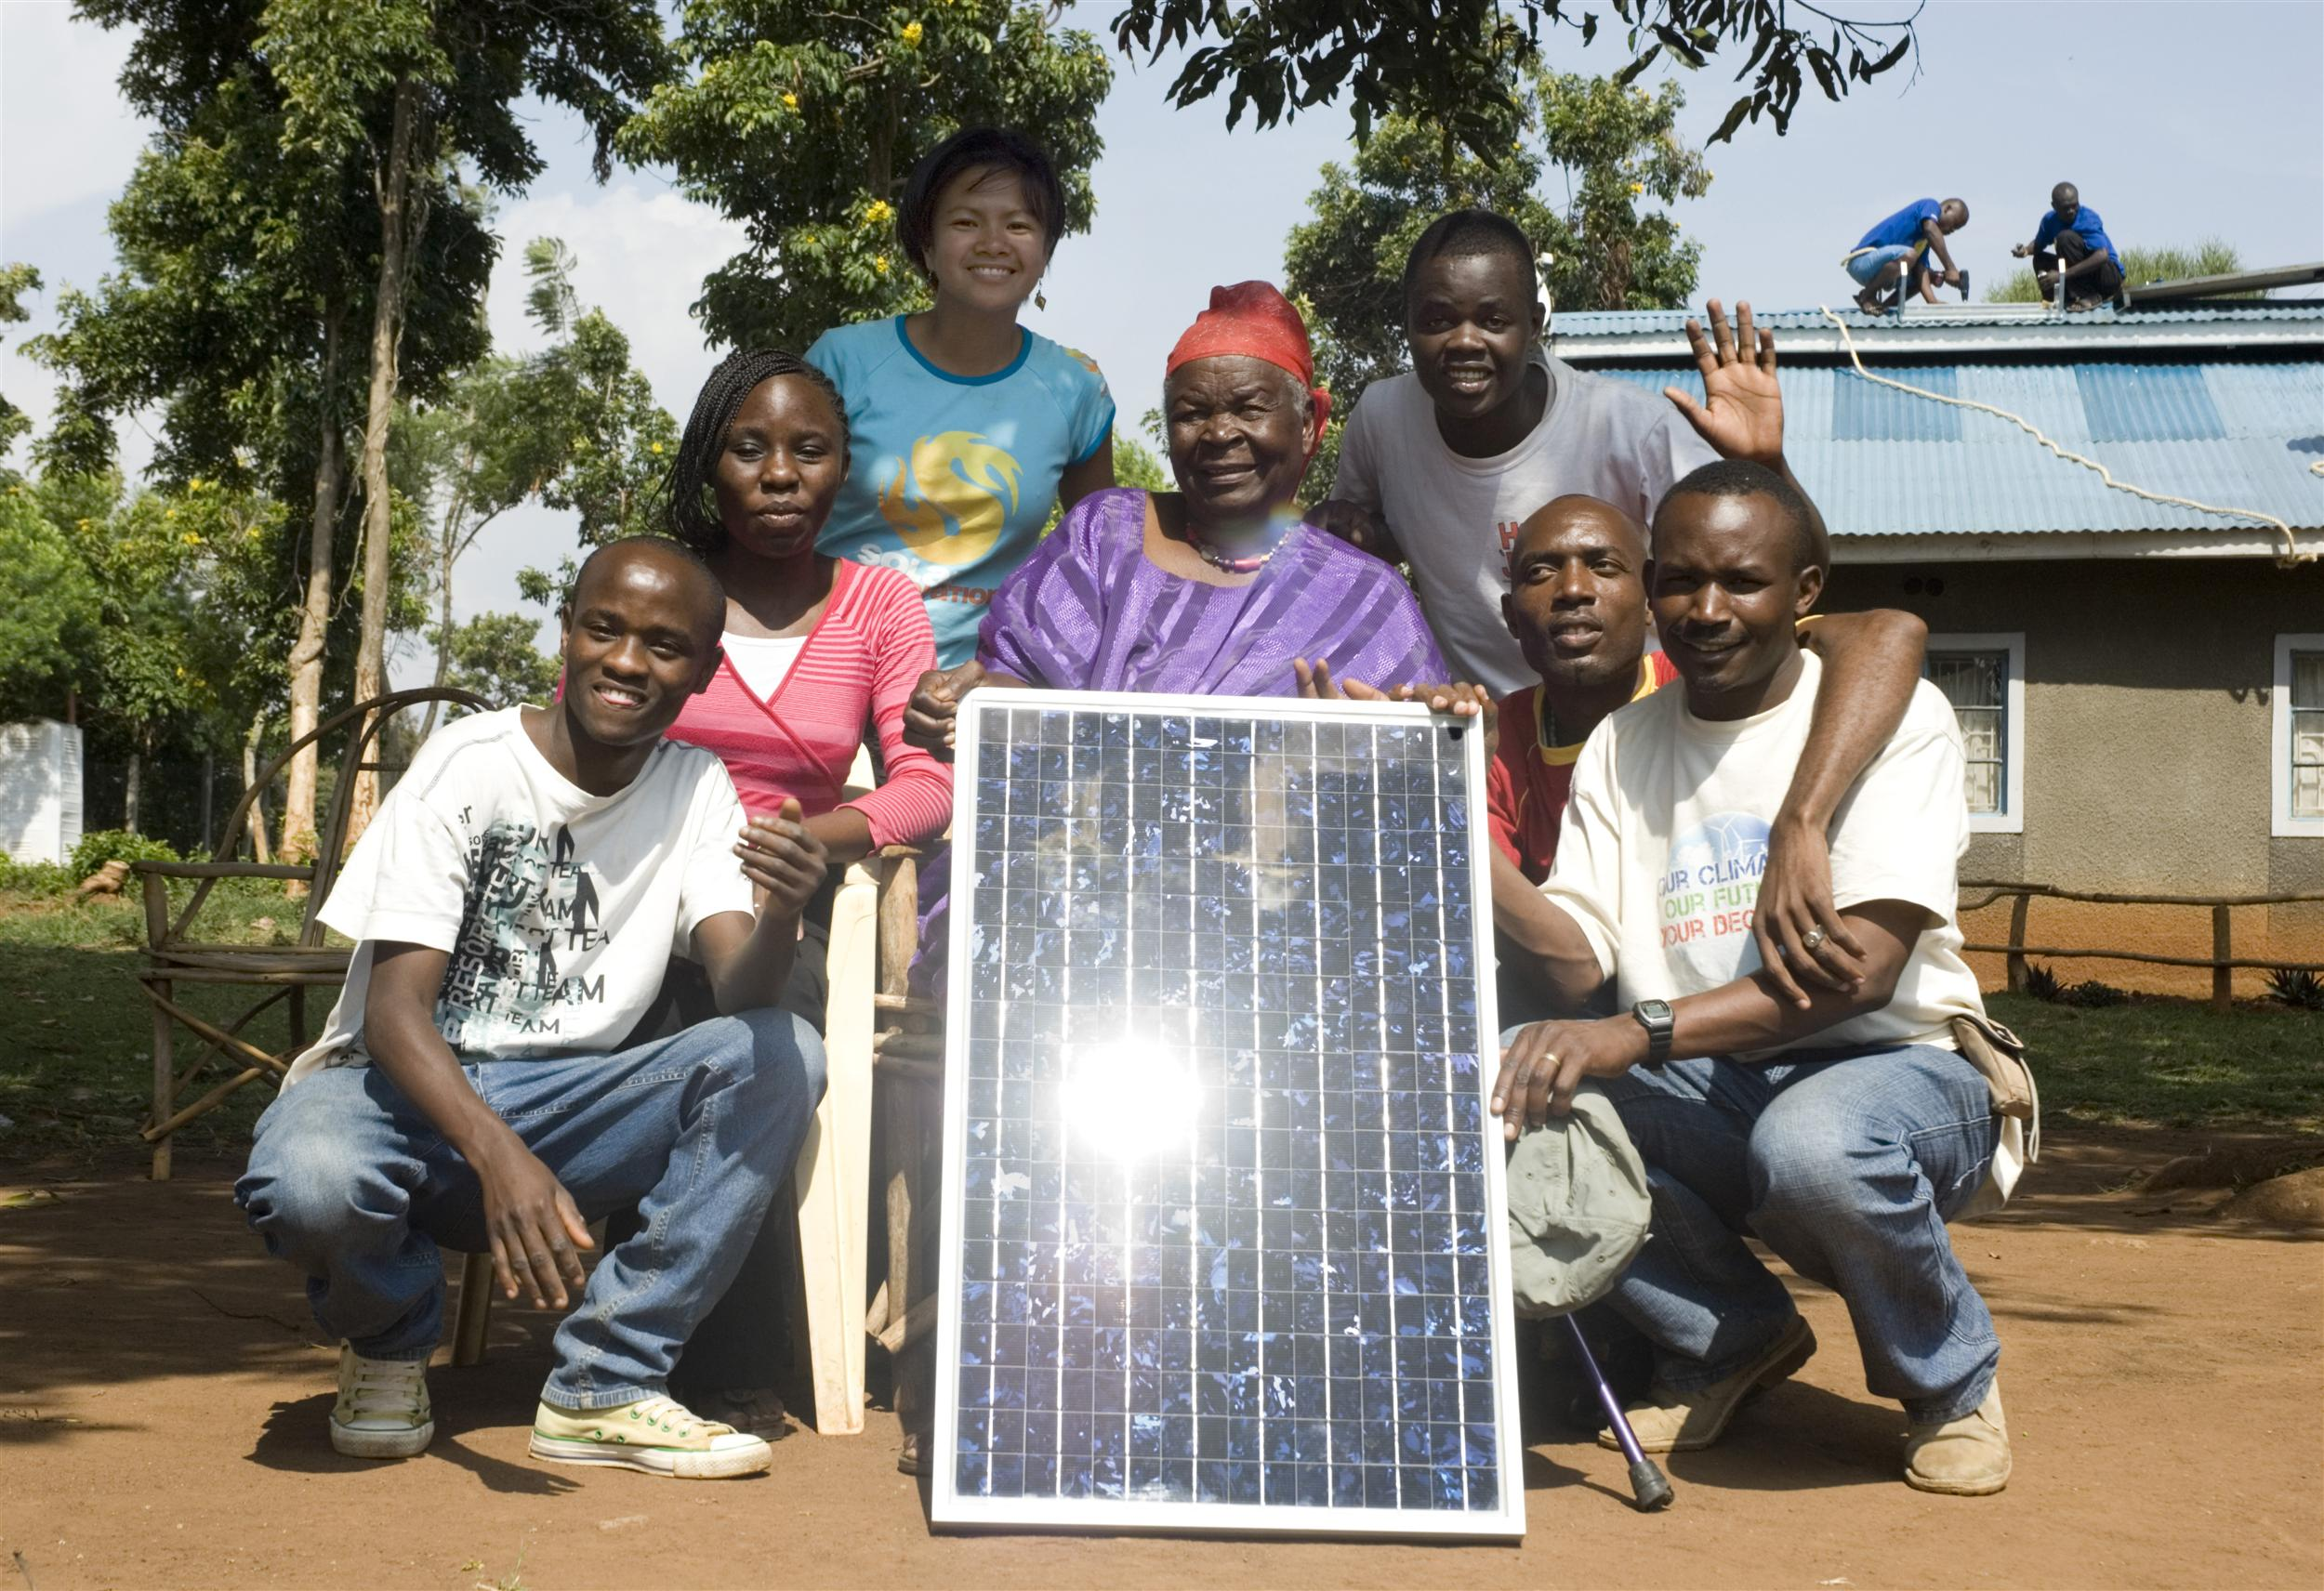 Mama Sara Obama, the US President's grandmother, holds a solar panel while posing for a group photo with solar panels